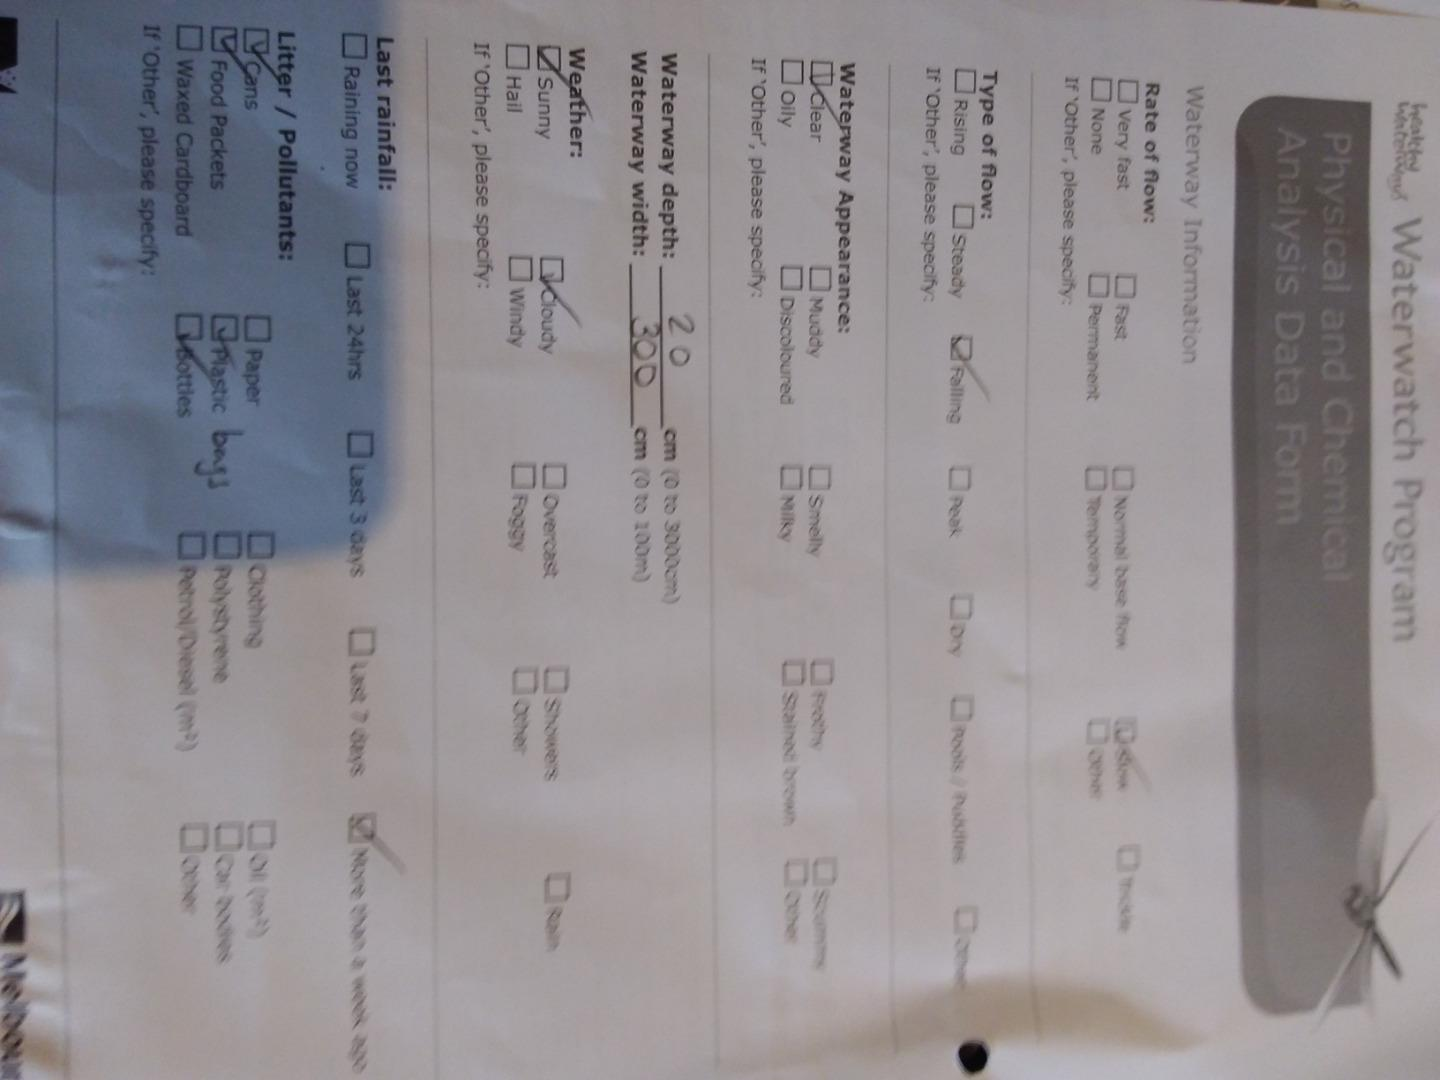 Page 2 of data sheet